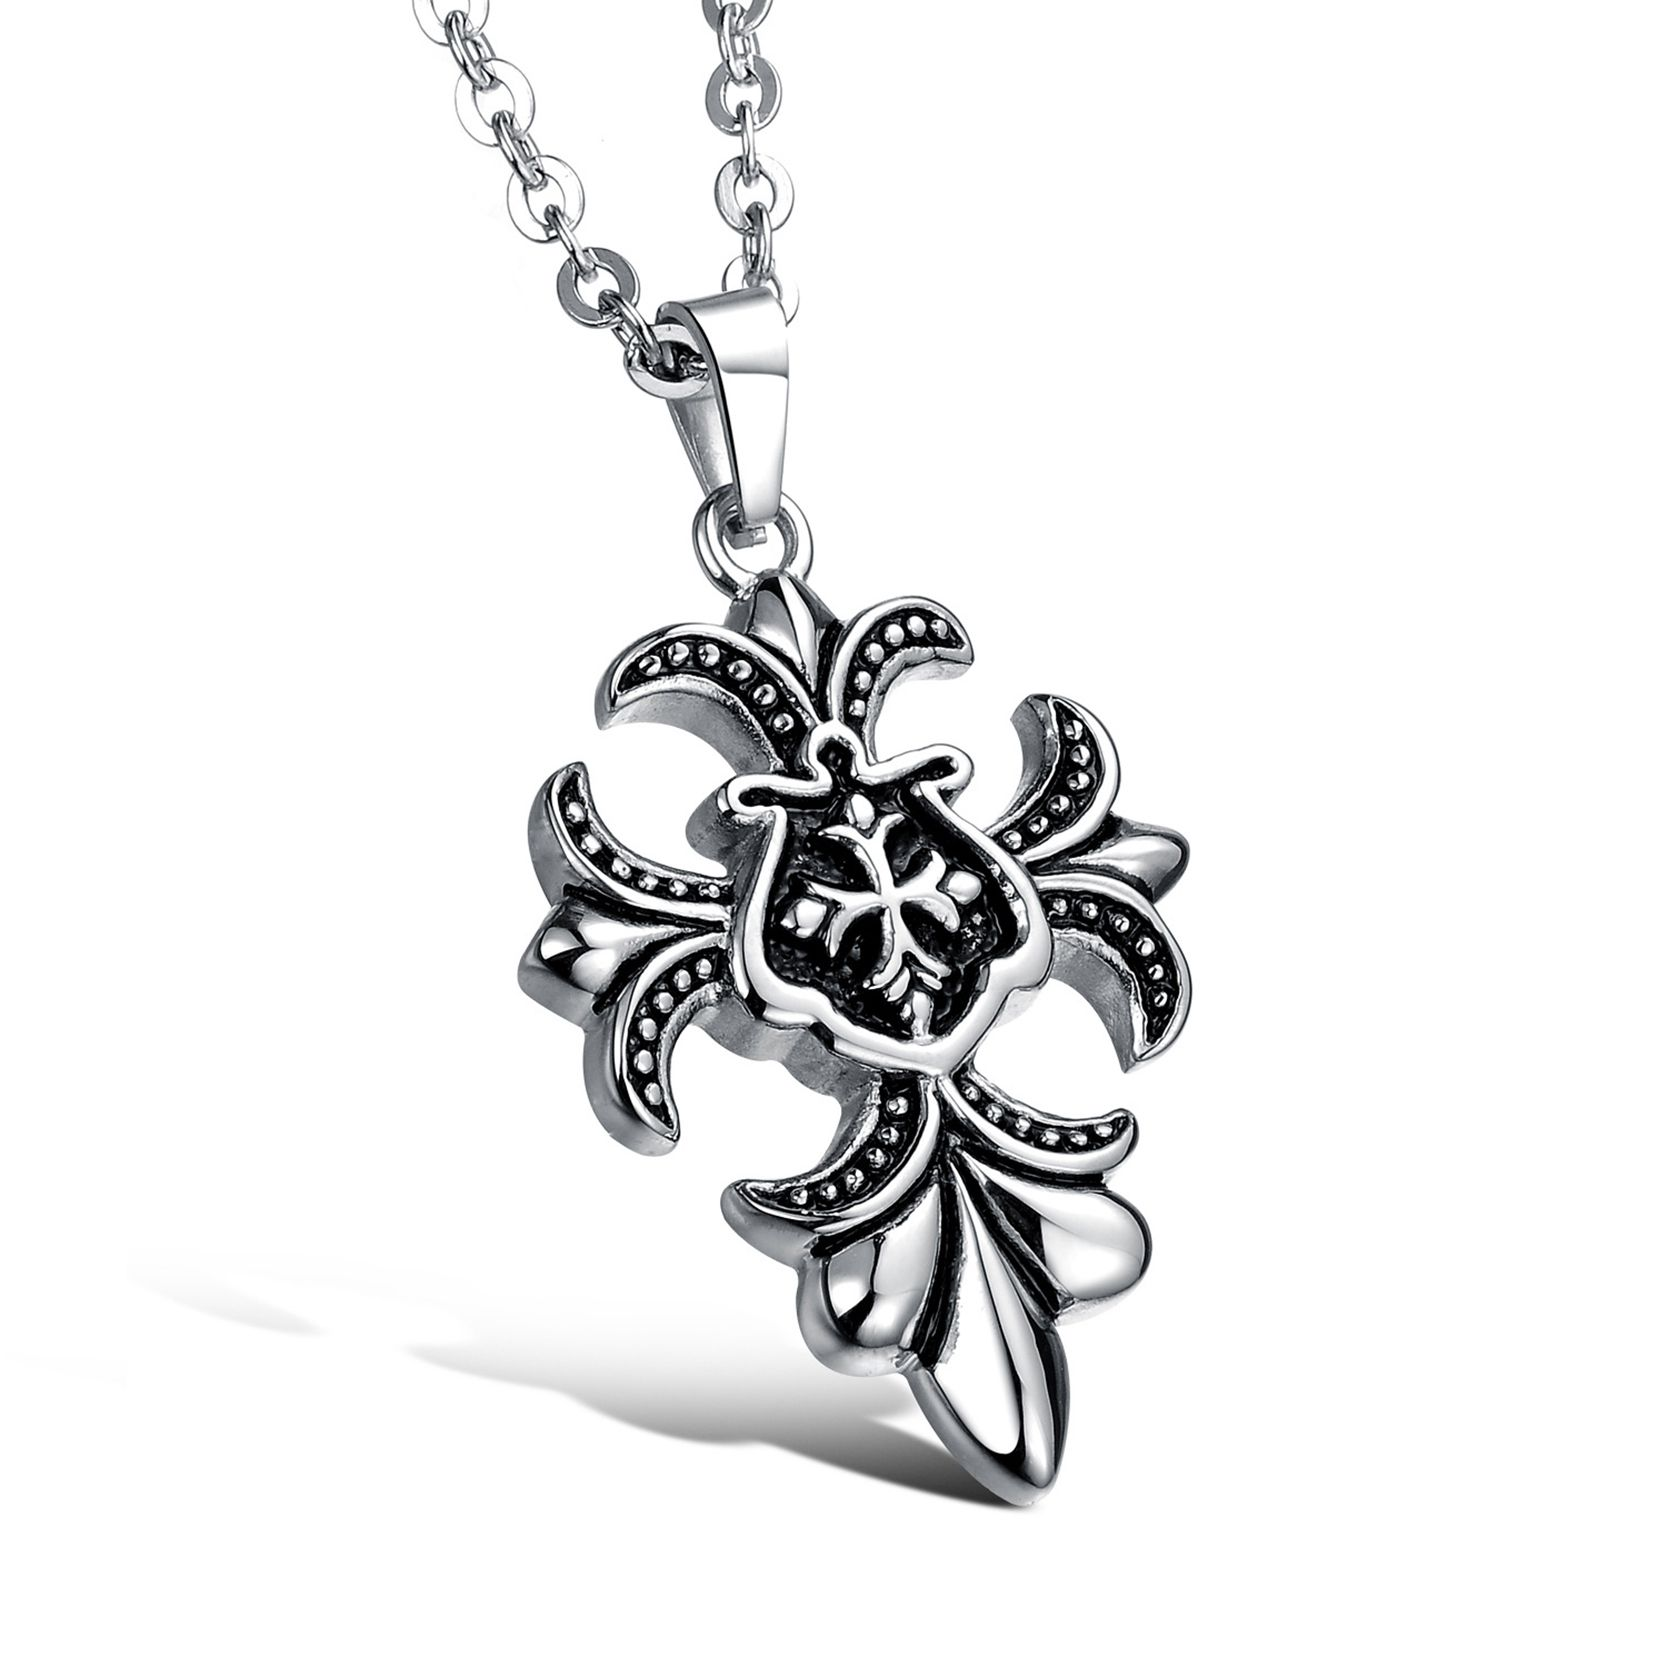 Obsede new arrival stainless steel exquisite fancy flowers necklace